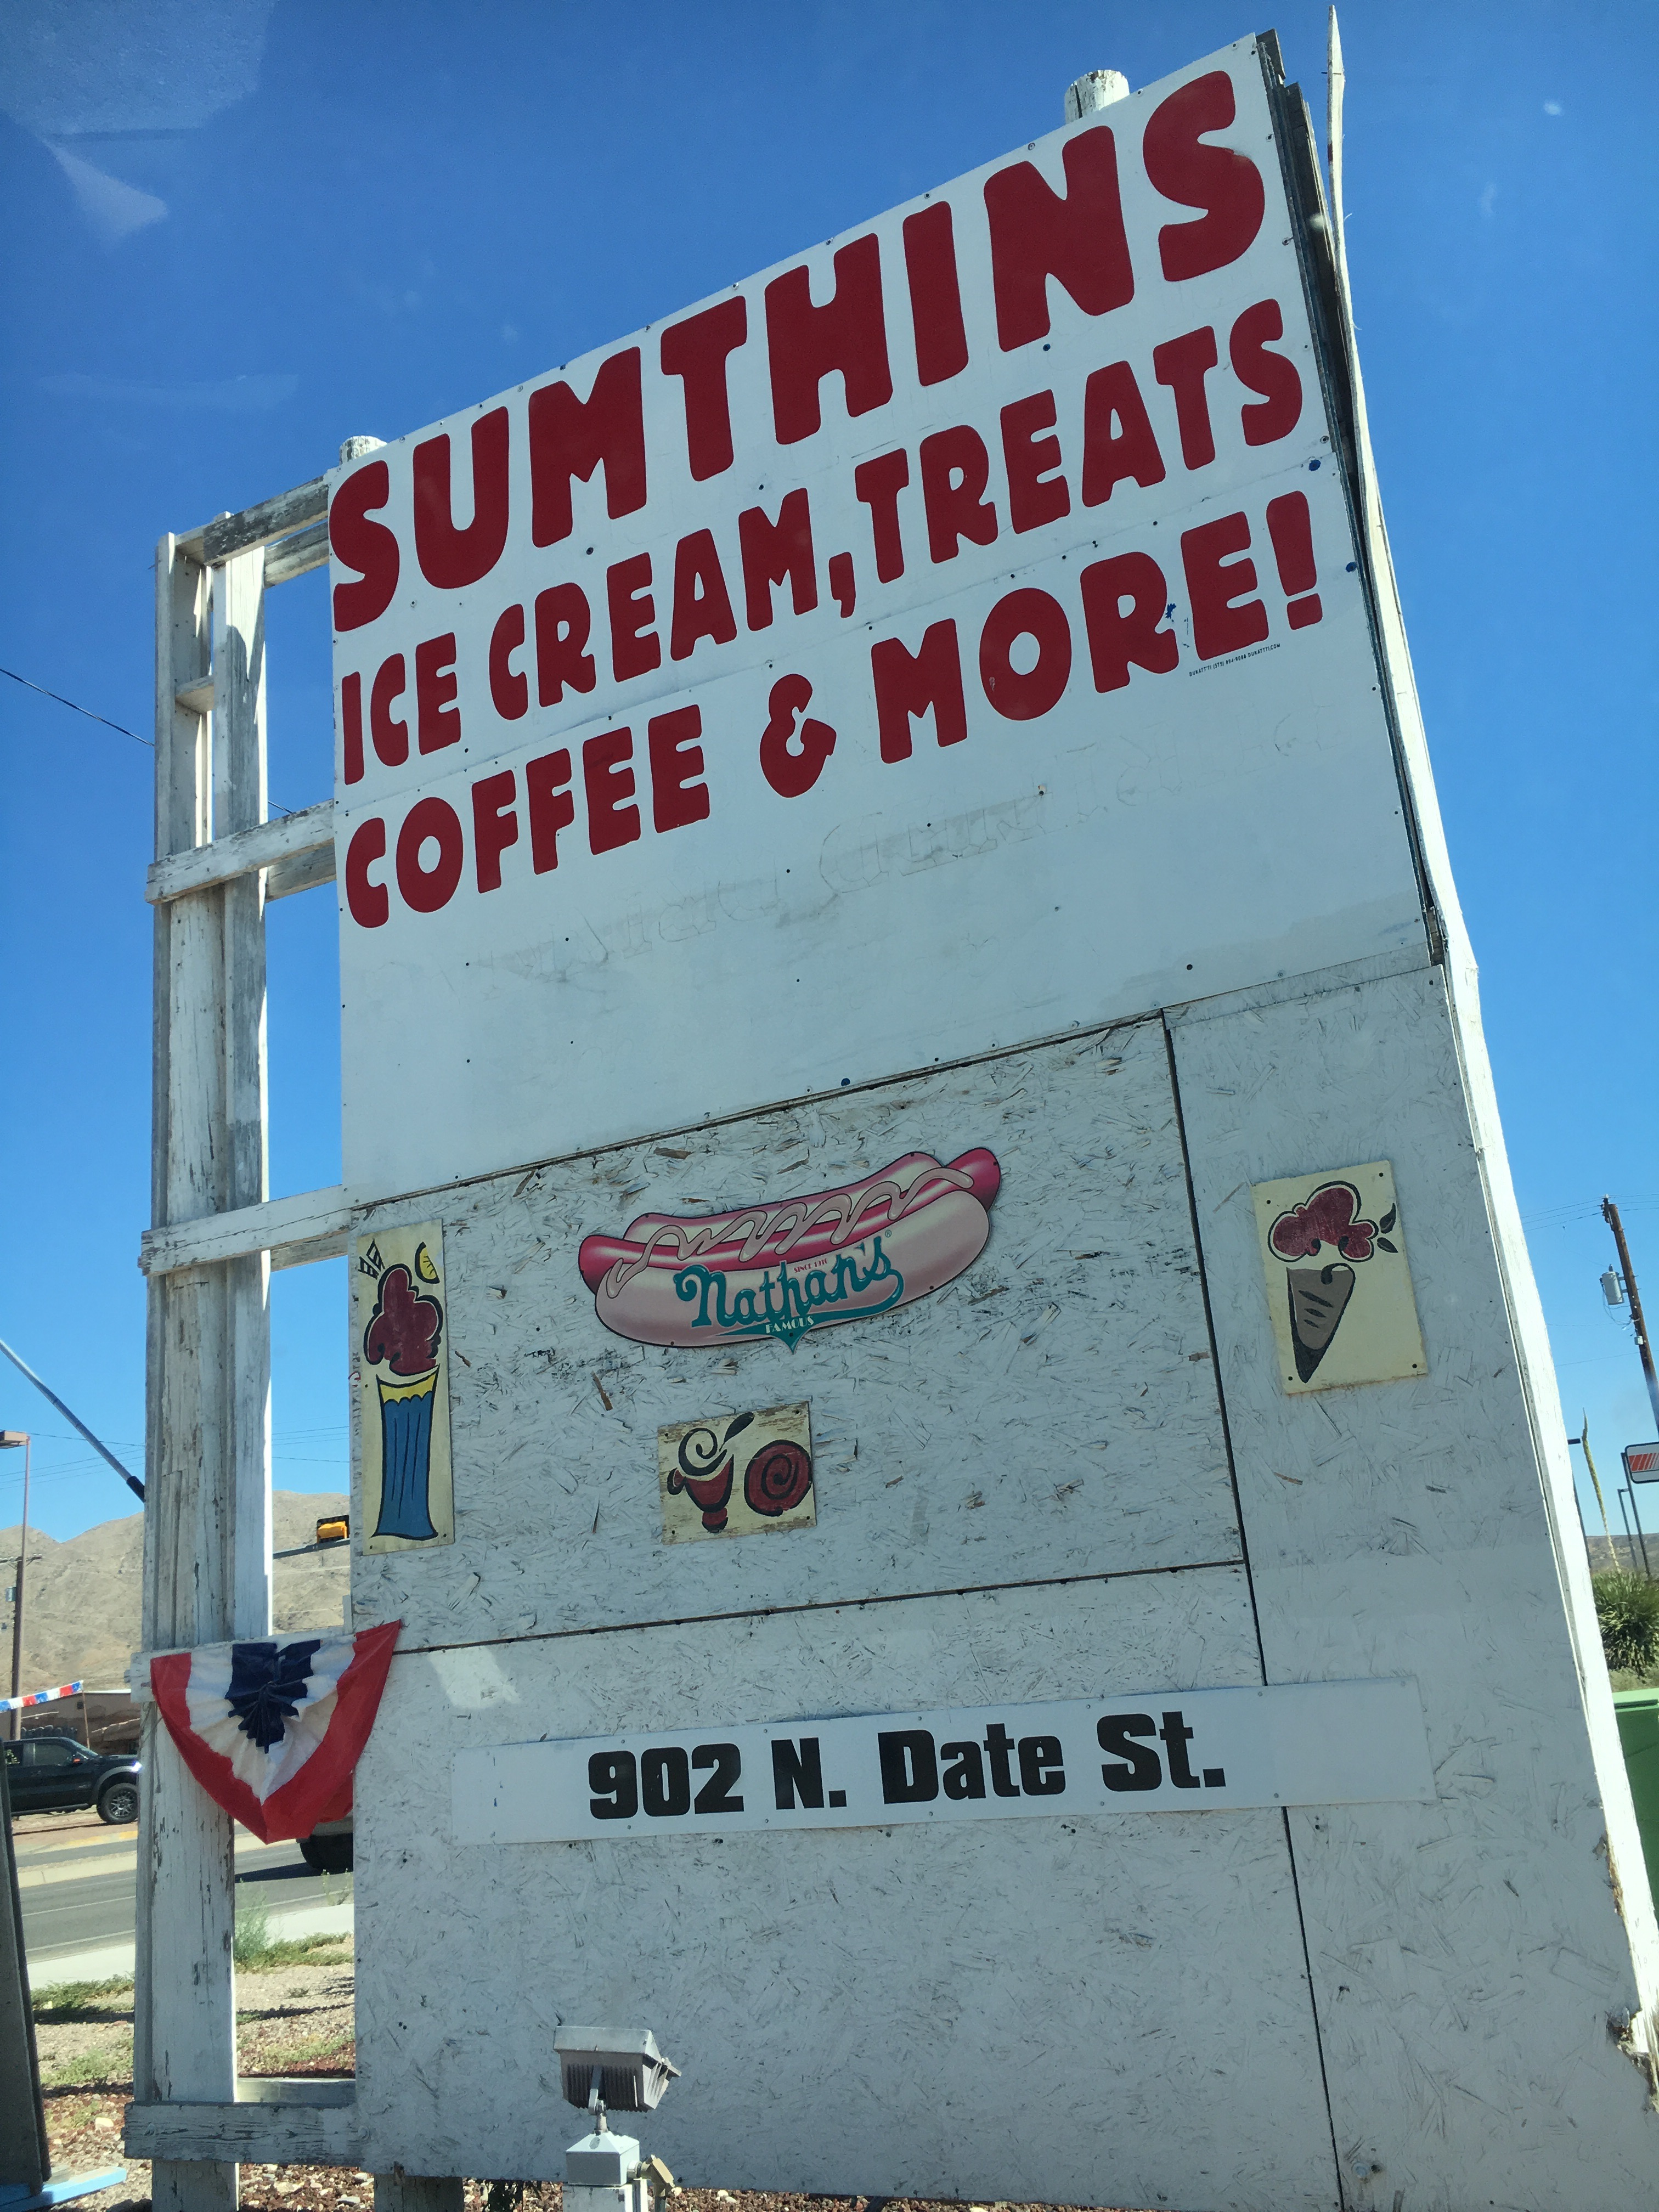 Sumthins Ice Cream and Sandwich Shop